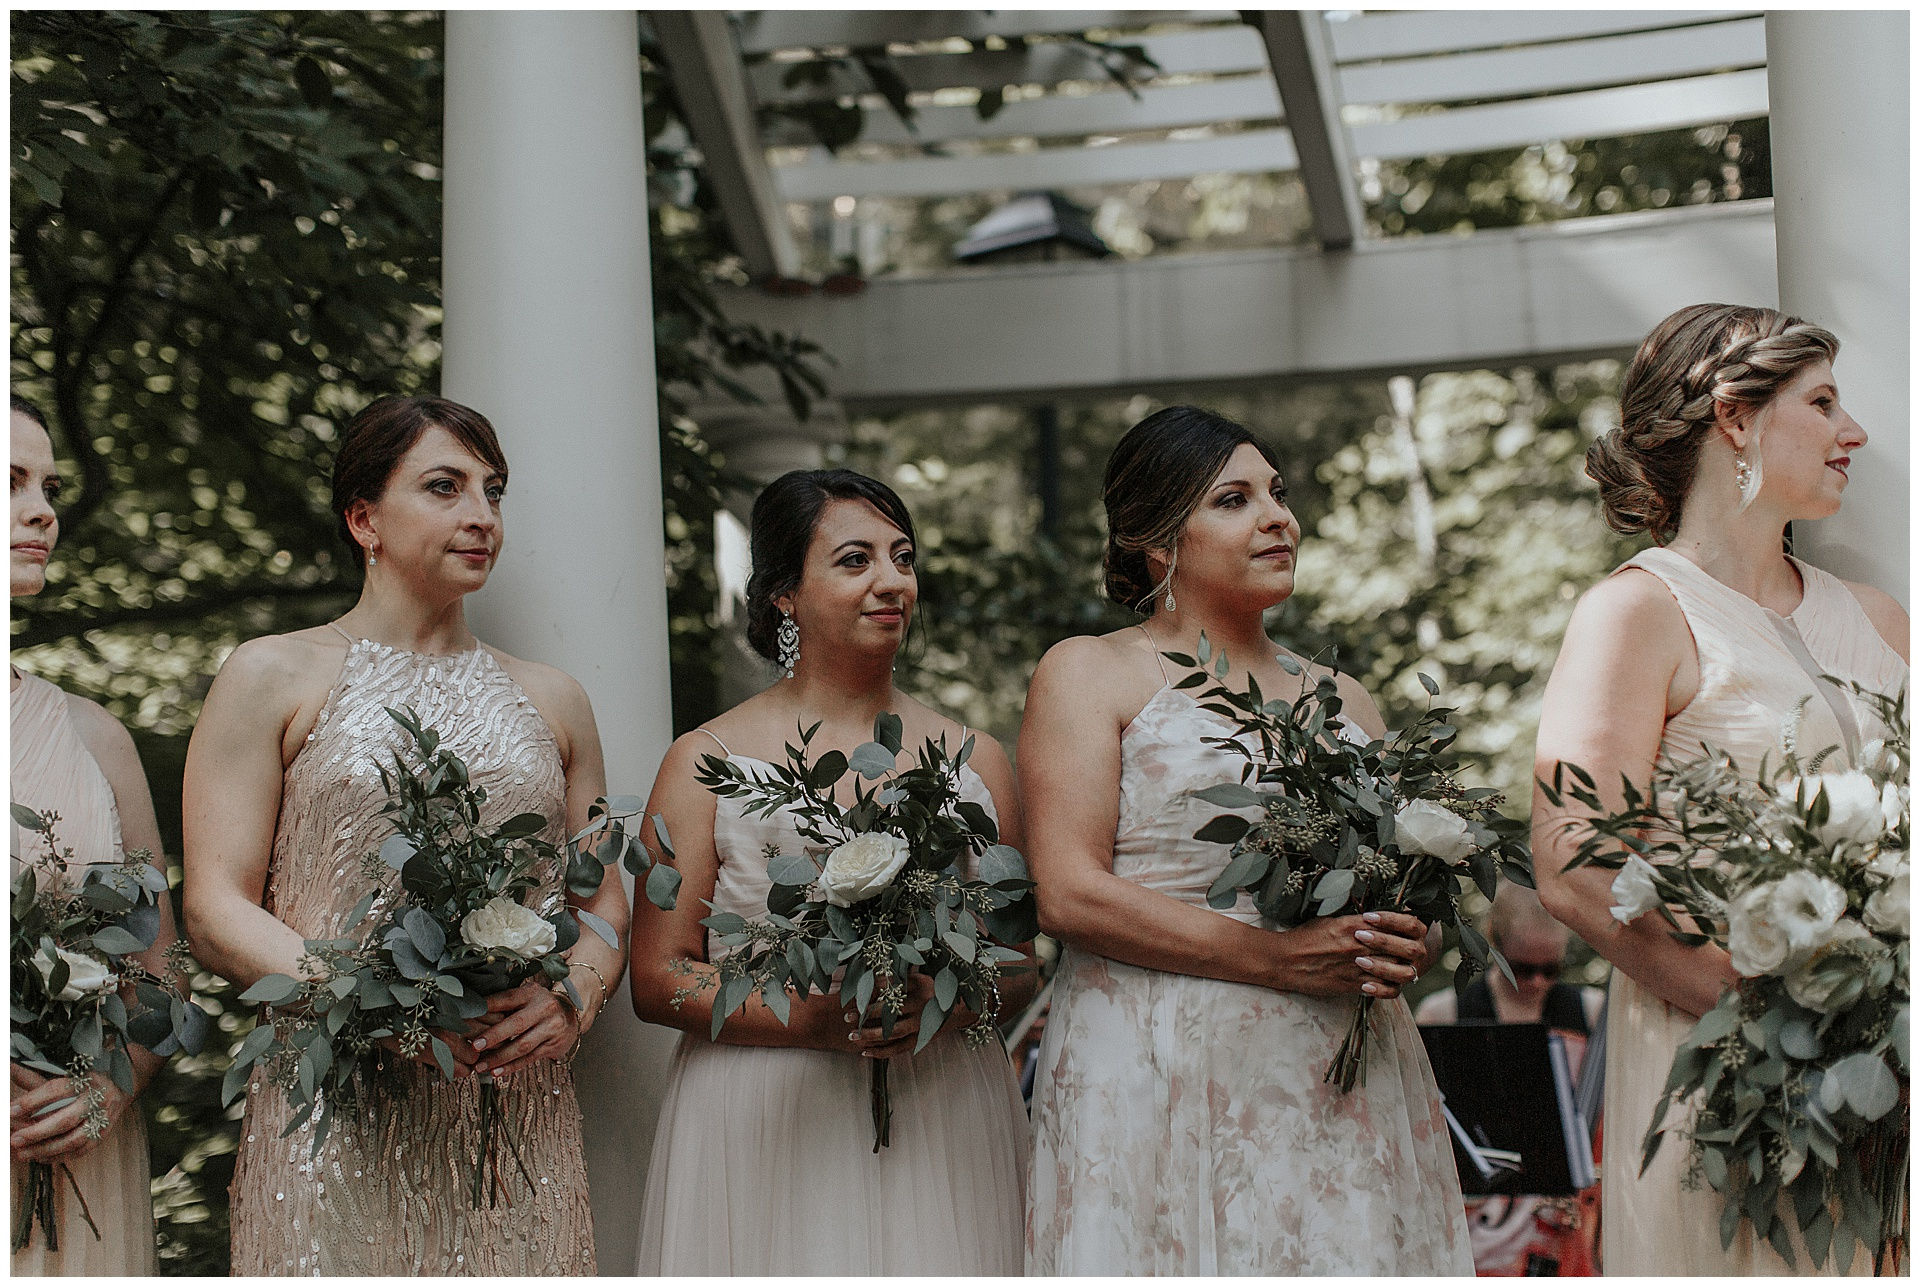 kelton house wedding columbus ohio_mia dimare photo25.jpg